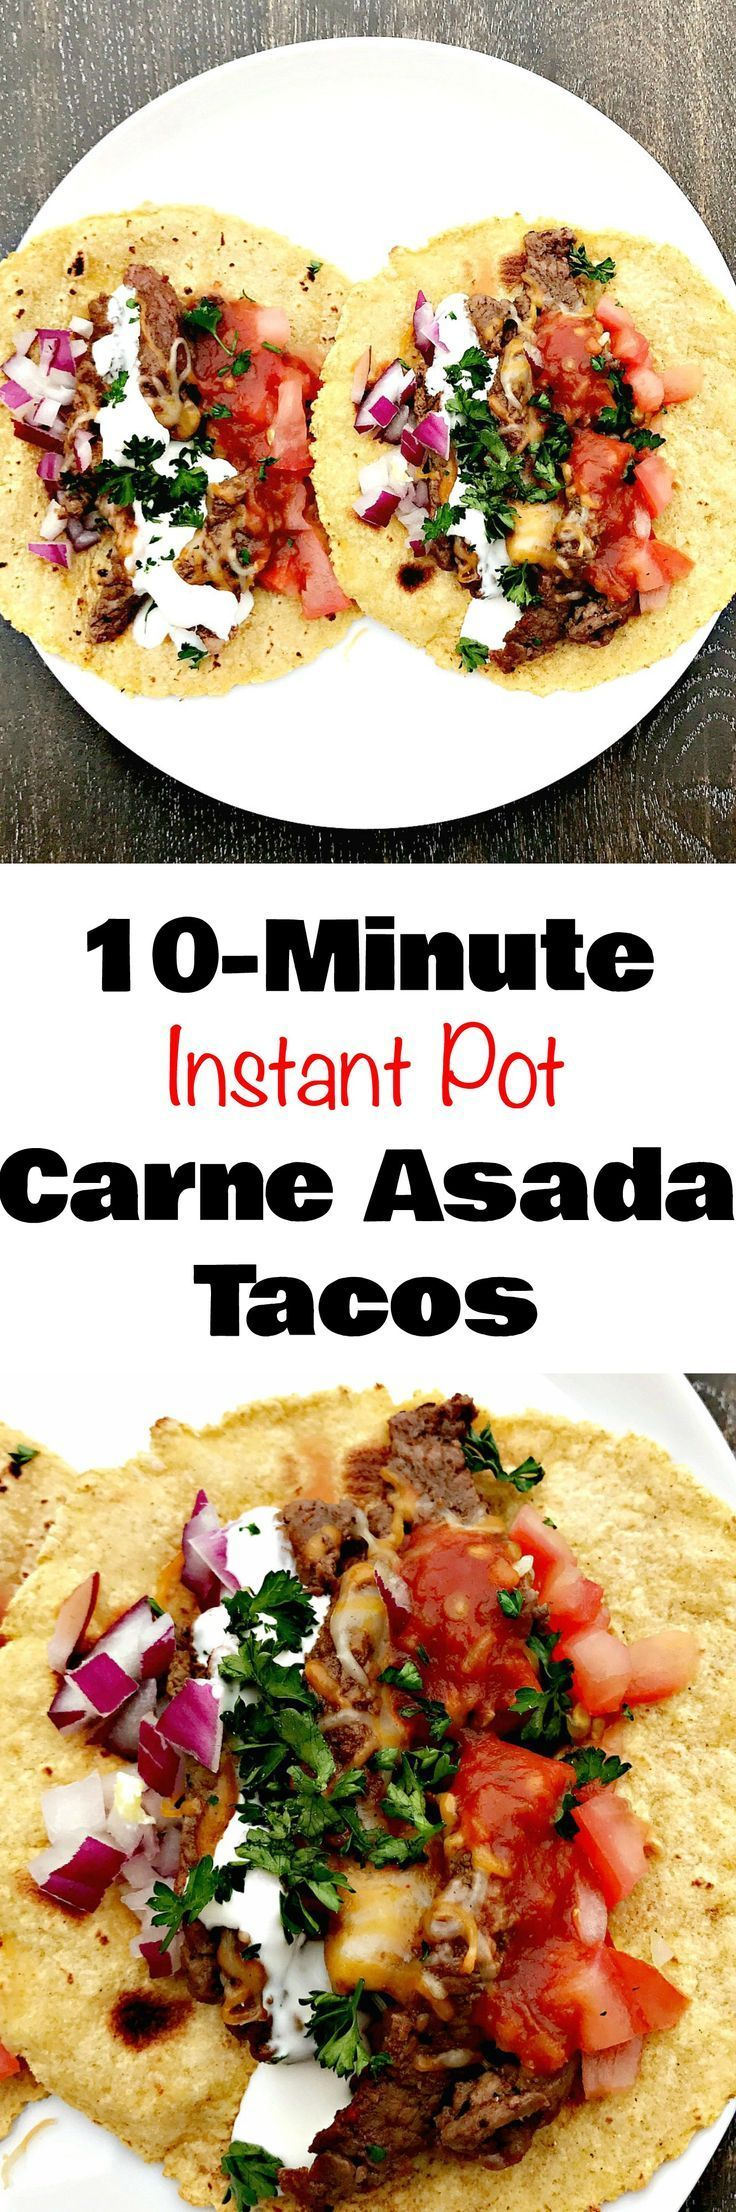 Quick and easy 10-minute Instant Pot steak tacos carne asada are a healthy and skinny meal. Tacos are loaded with fresh salsa, cilantro, and juicy steak.